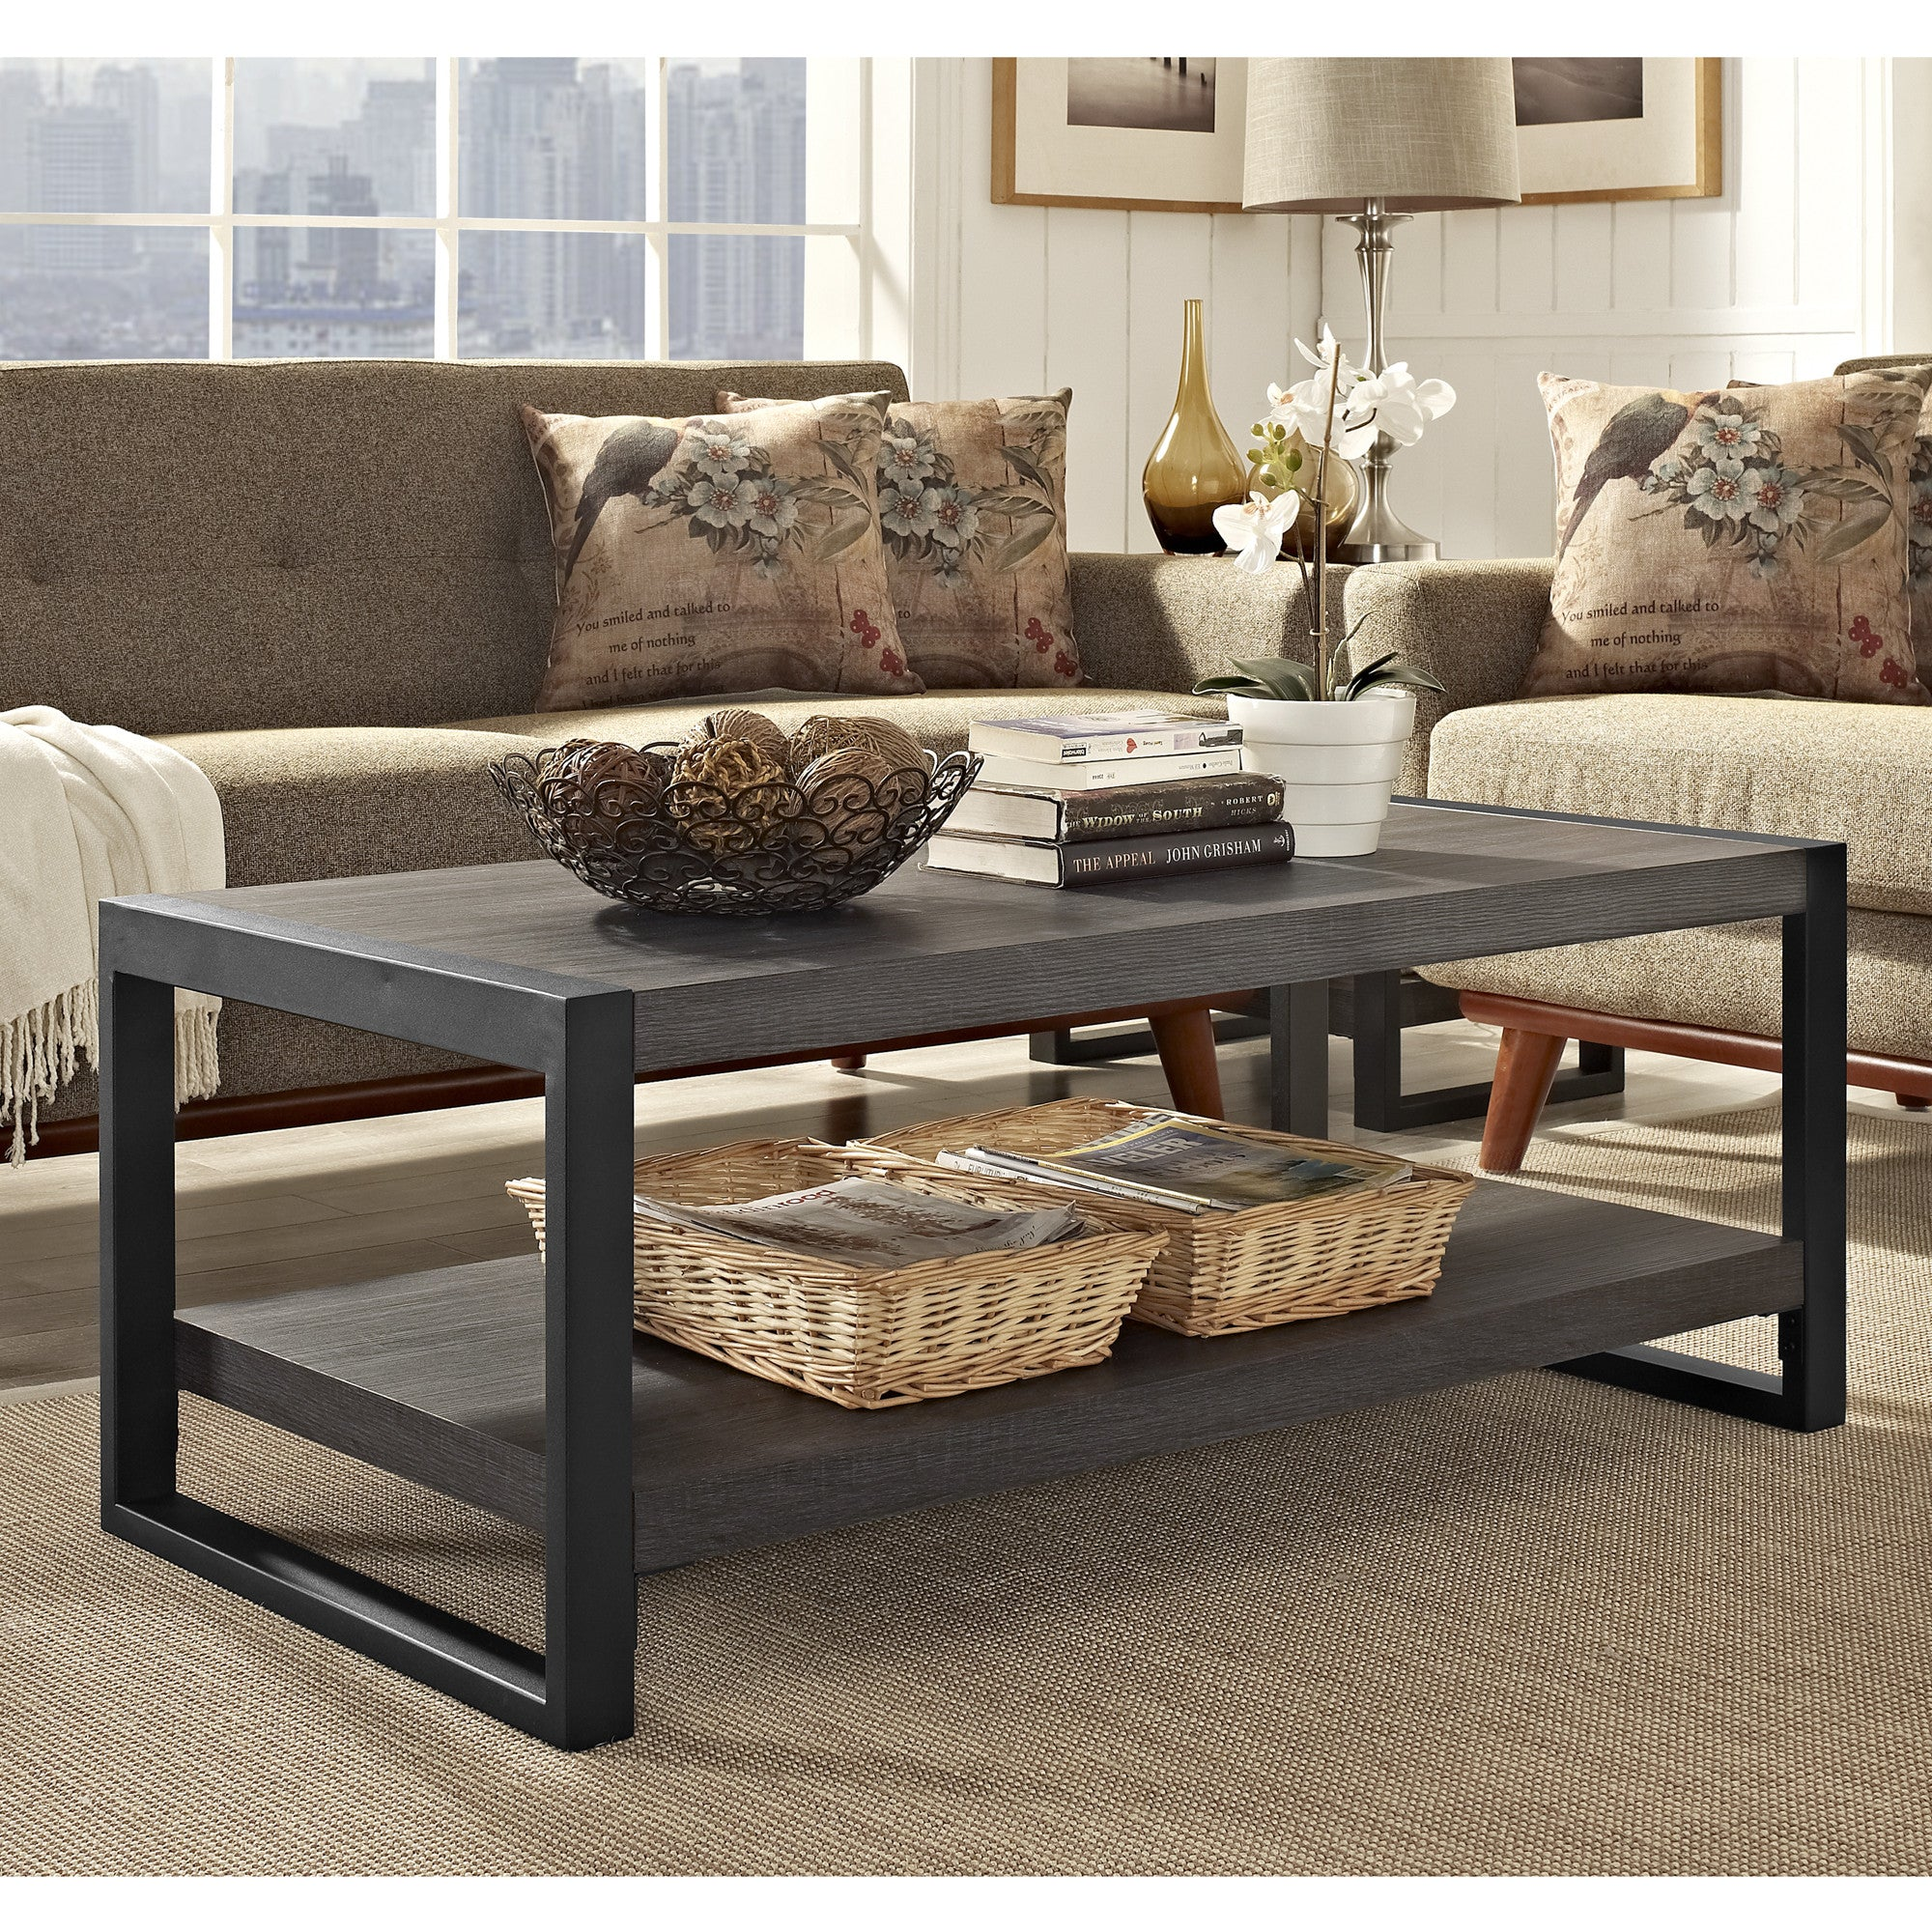 """angelo HOME City Grove 48"""" Coffee Table in Charcoal"""